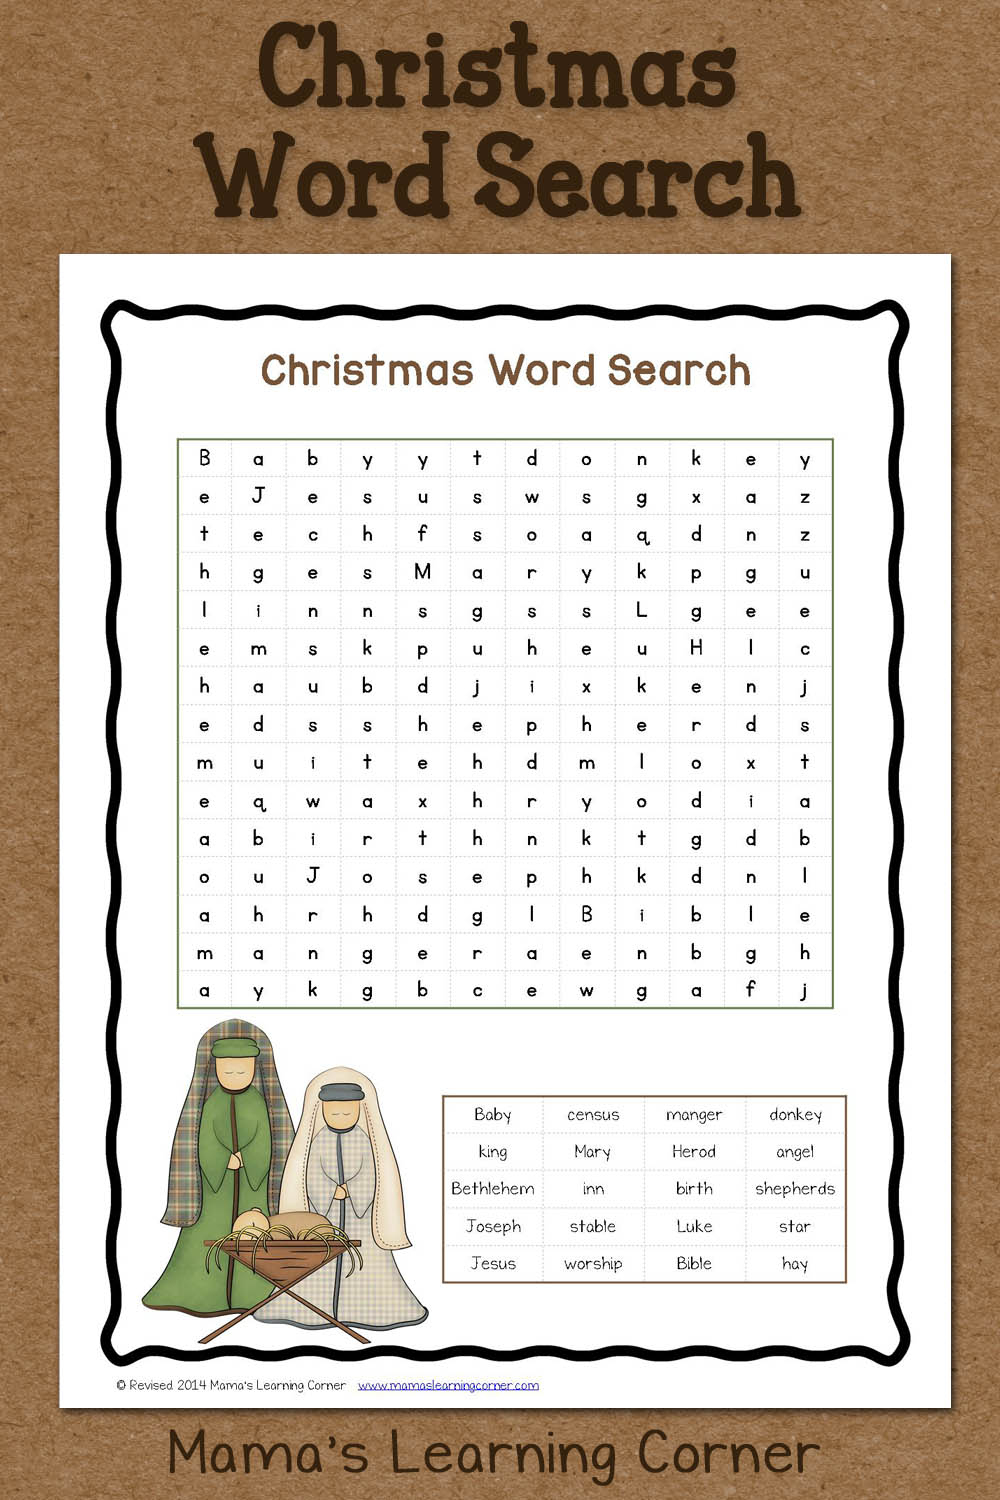 Christmas Word Search: Free Printable - Mamas Learning Corner - Christian Word Search Puzzles Free Printable